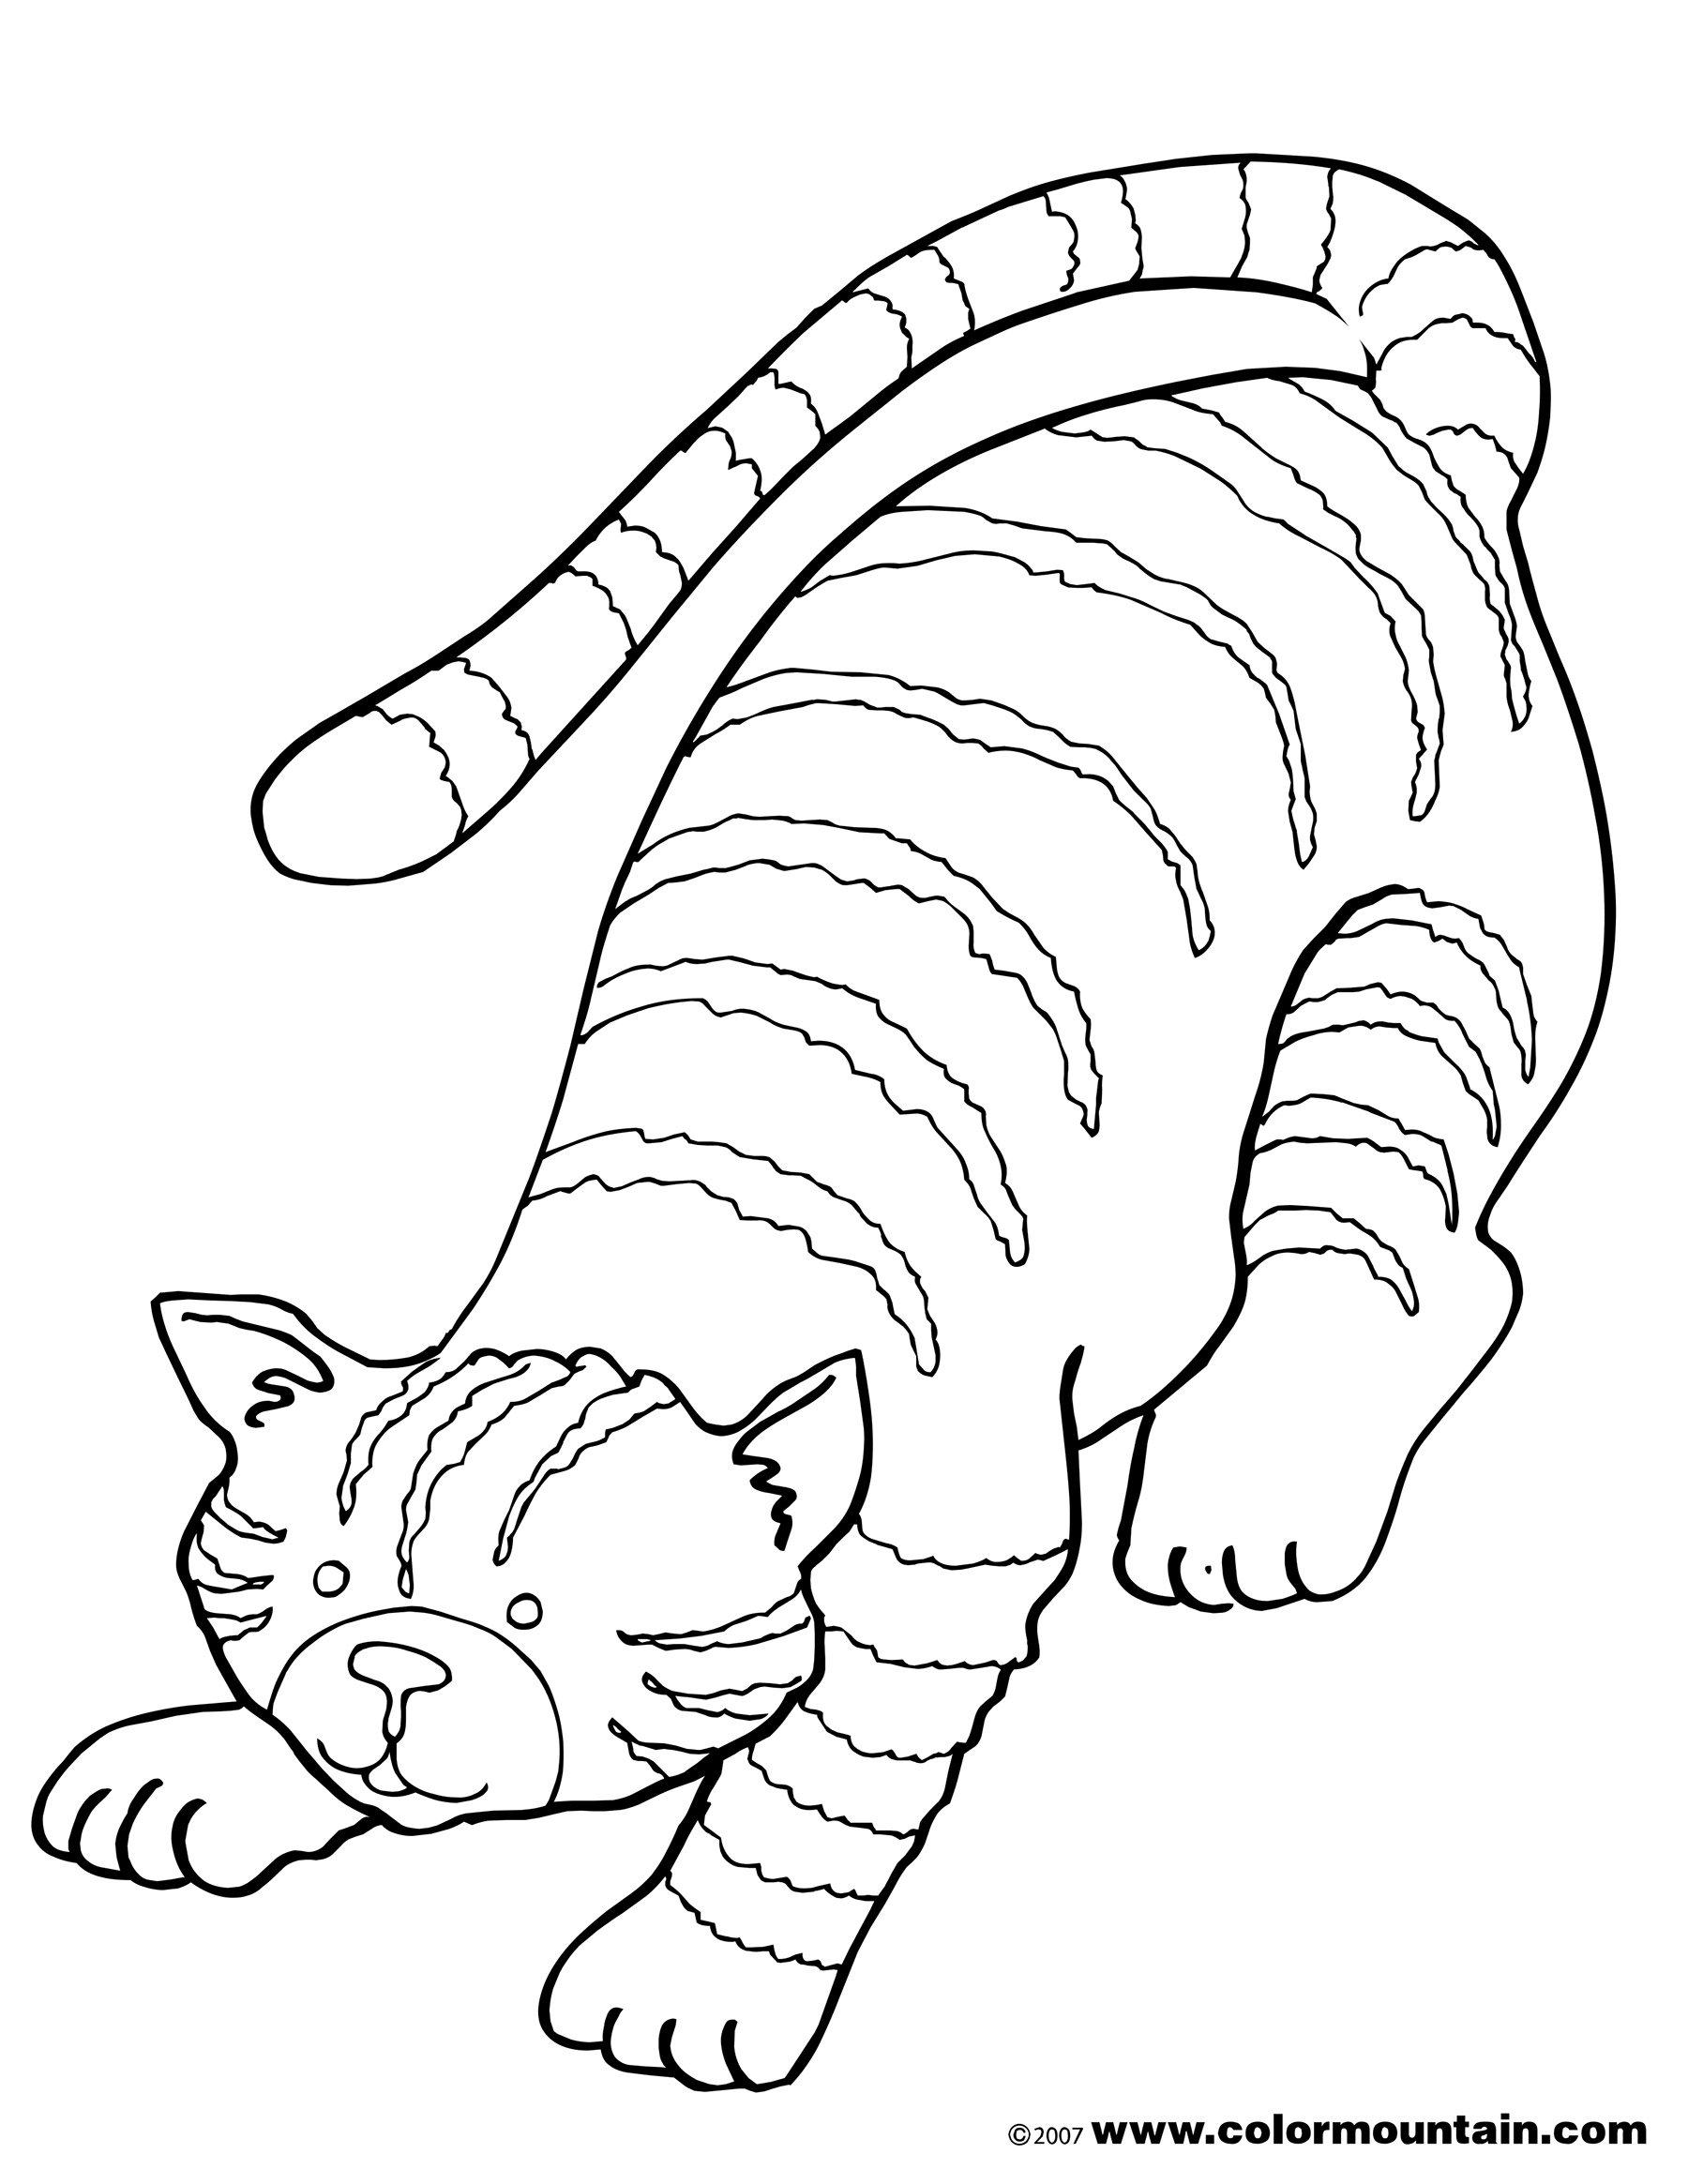 Tabby Cat Drawing At Getdrawings